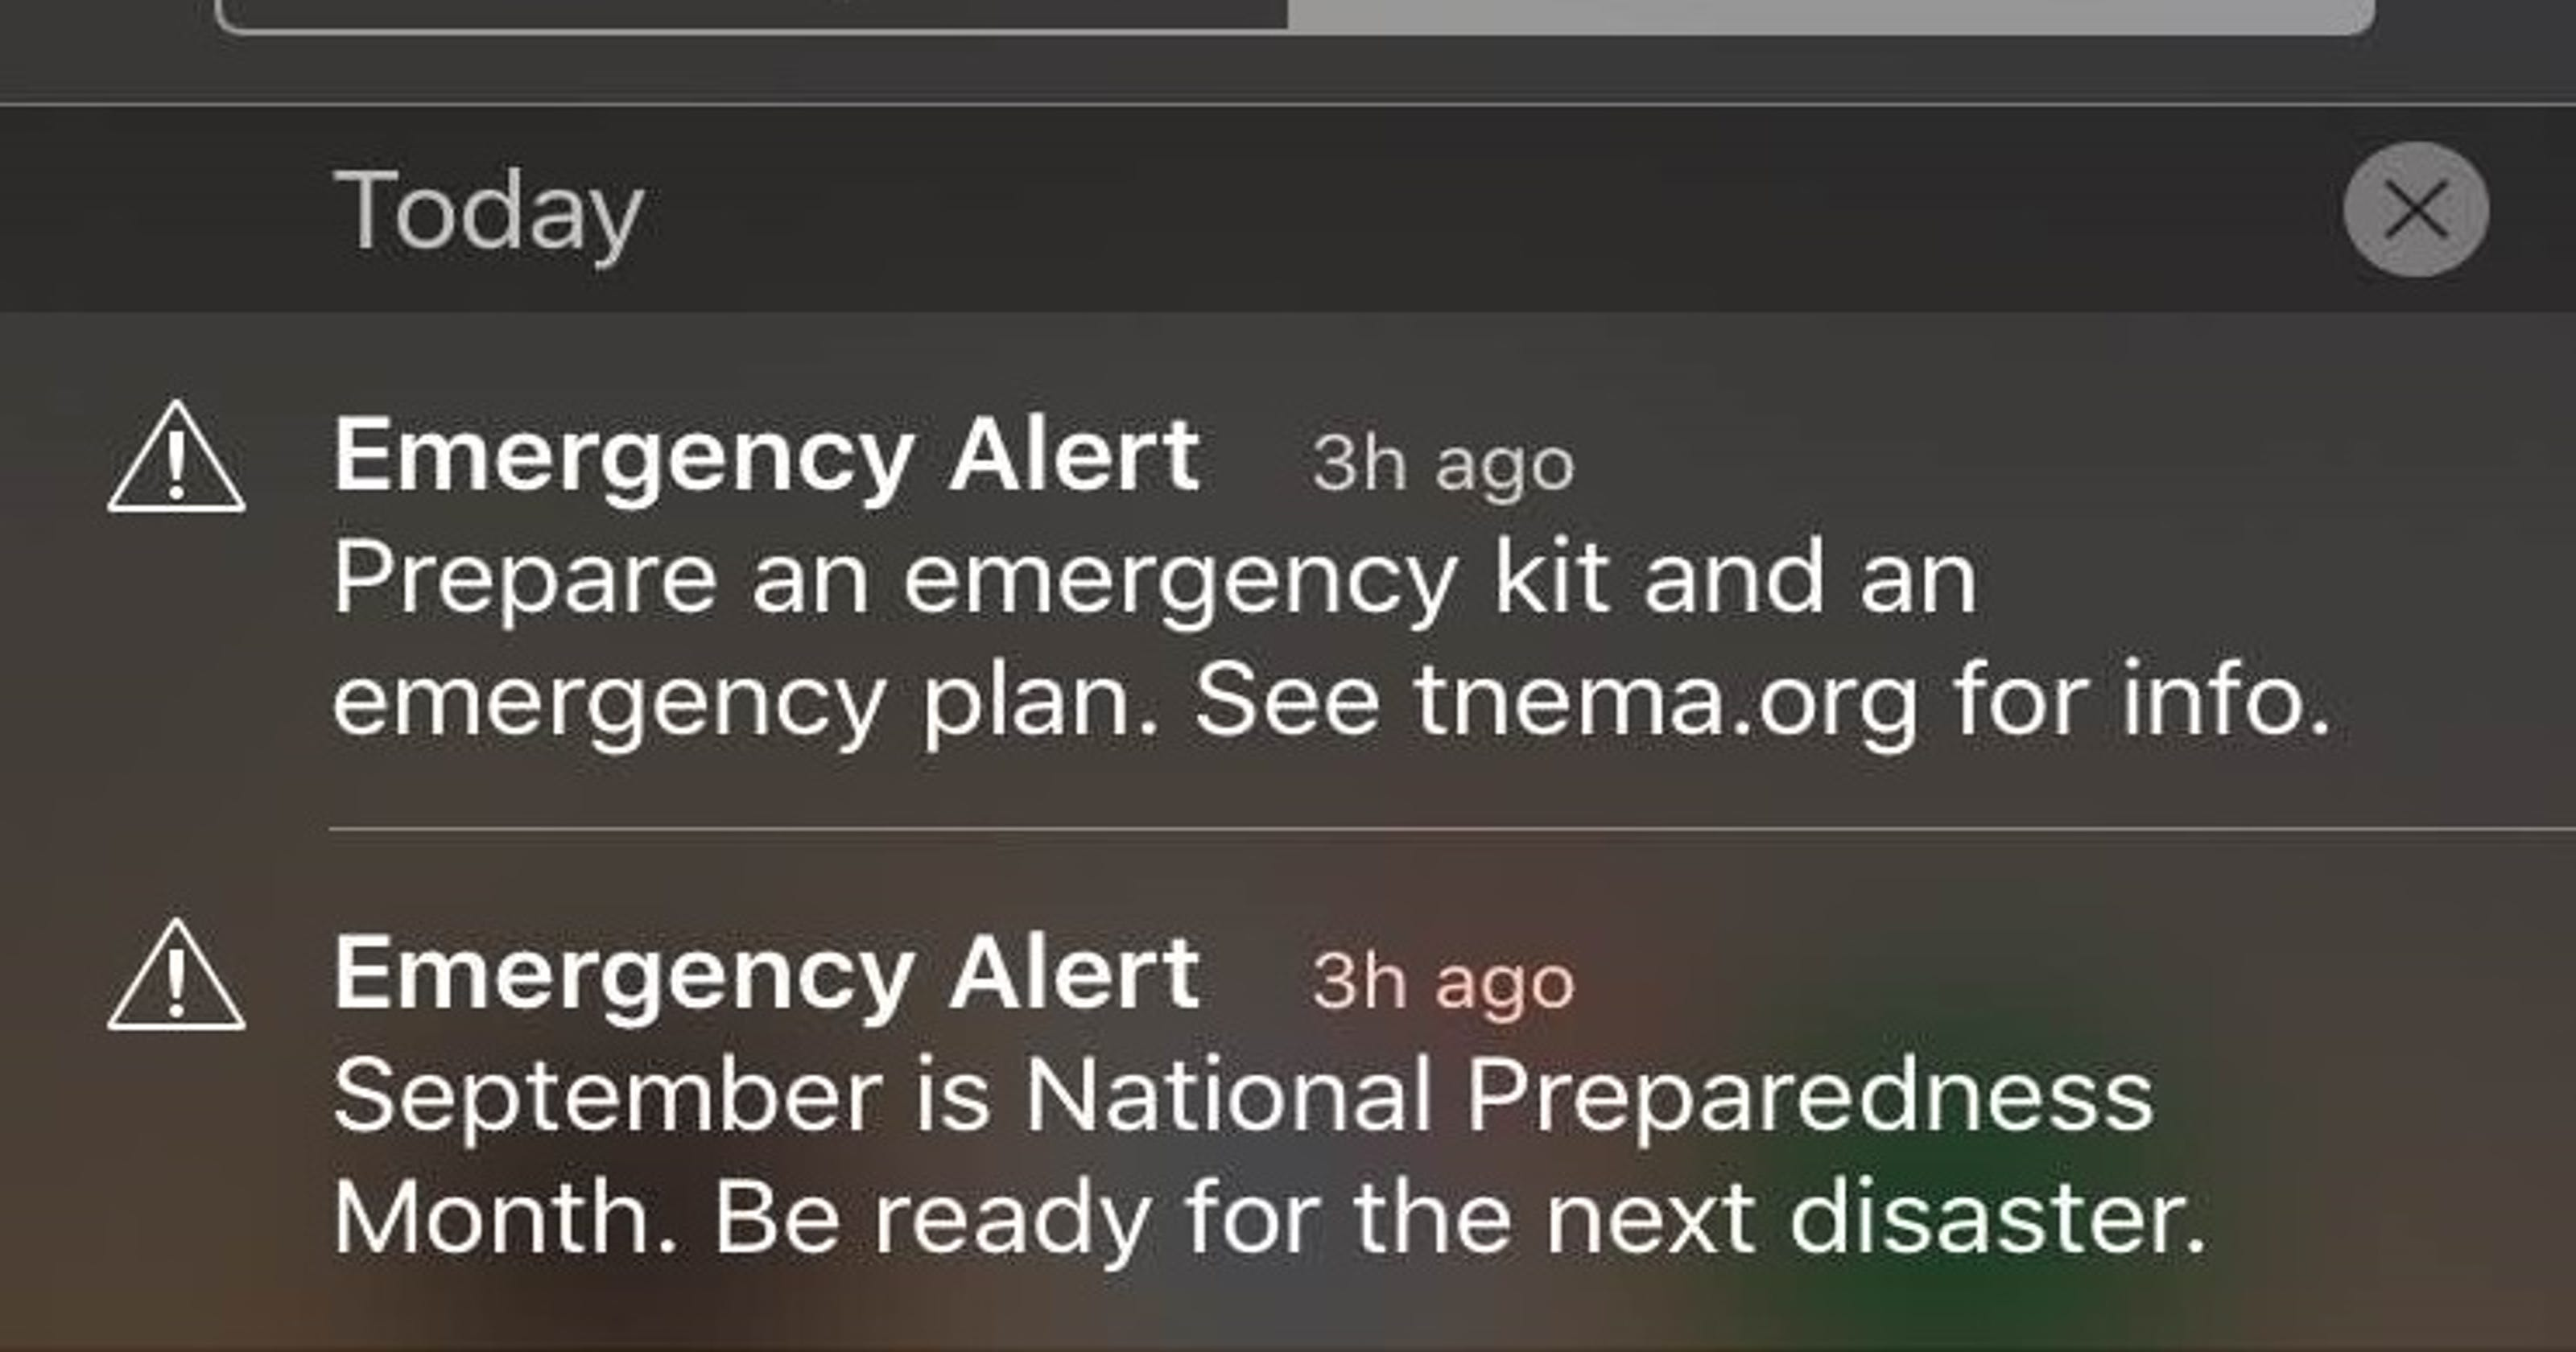 TEMA director apologizes for emergency alert problems